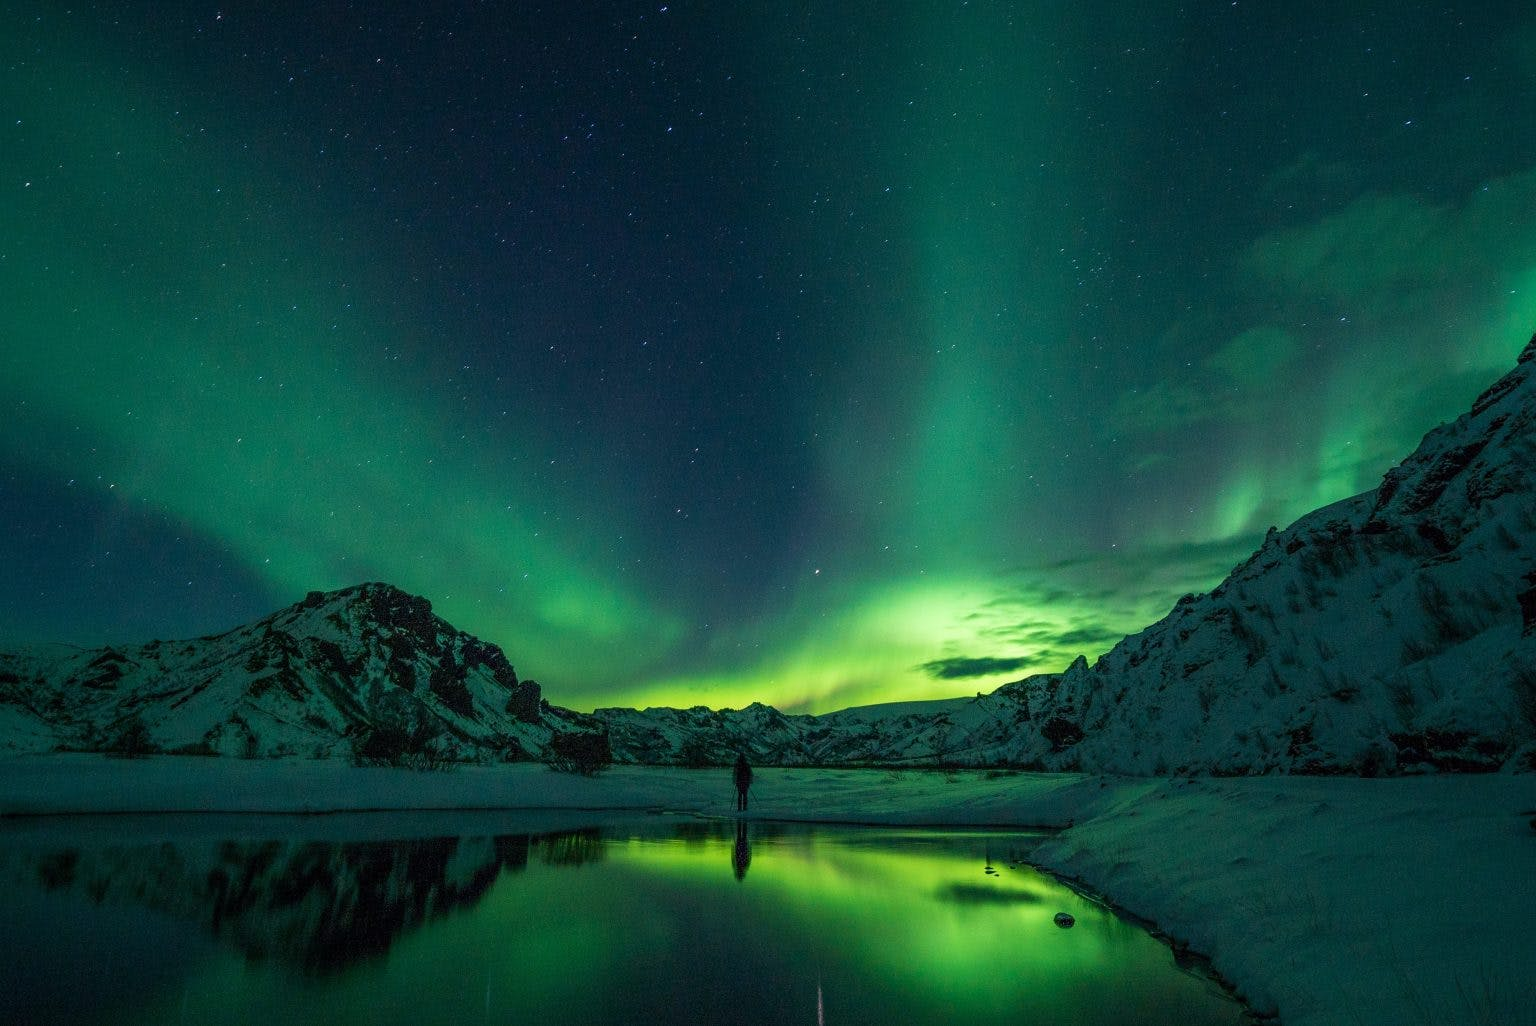 What are common myths and legends of the northern lights?